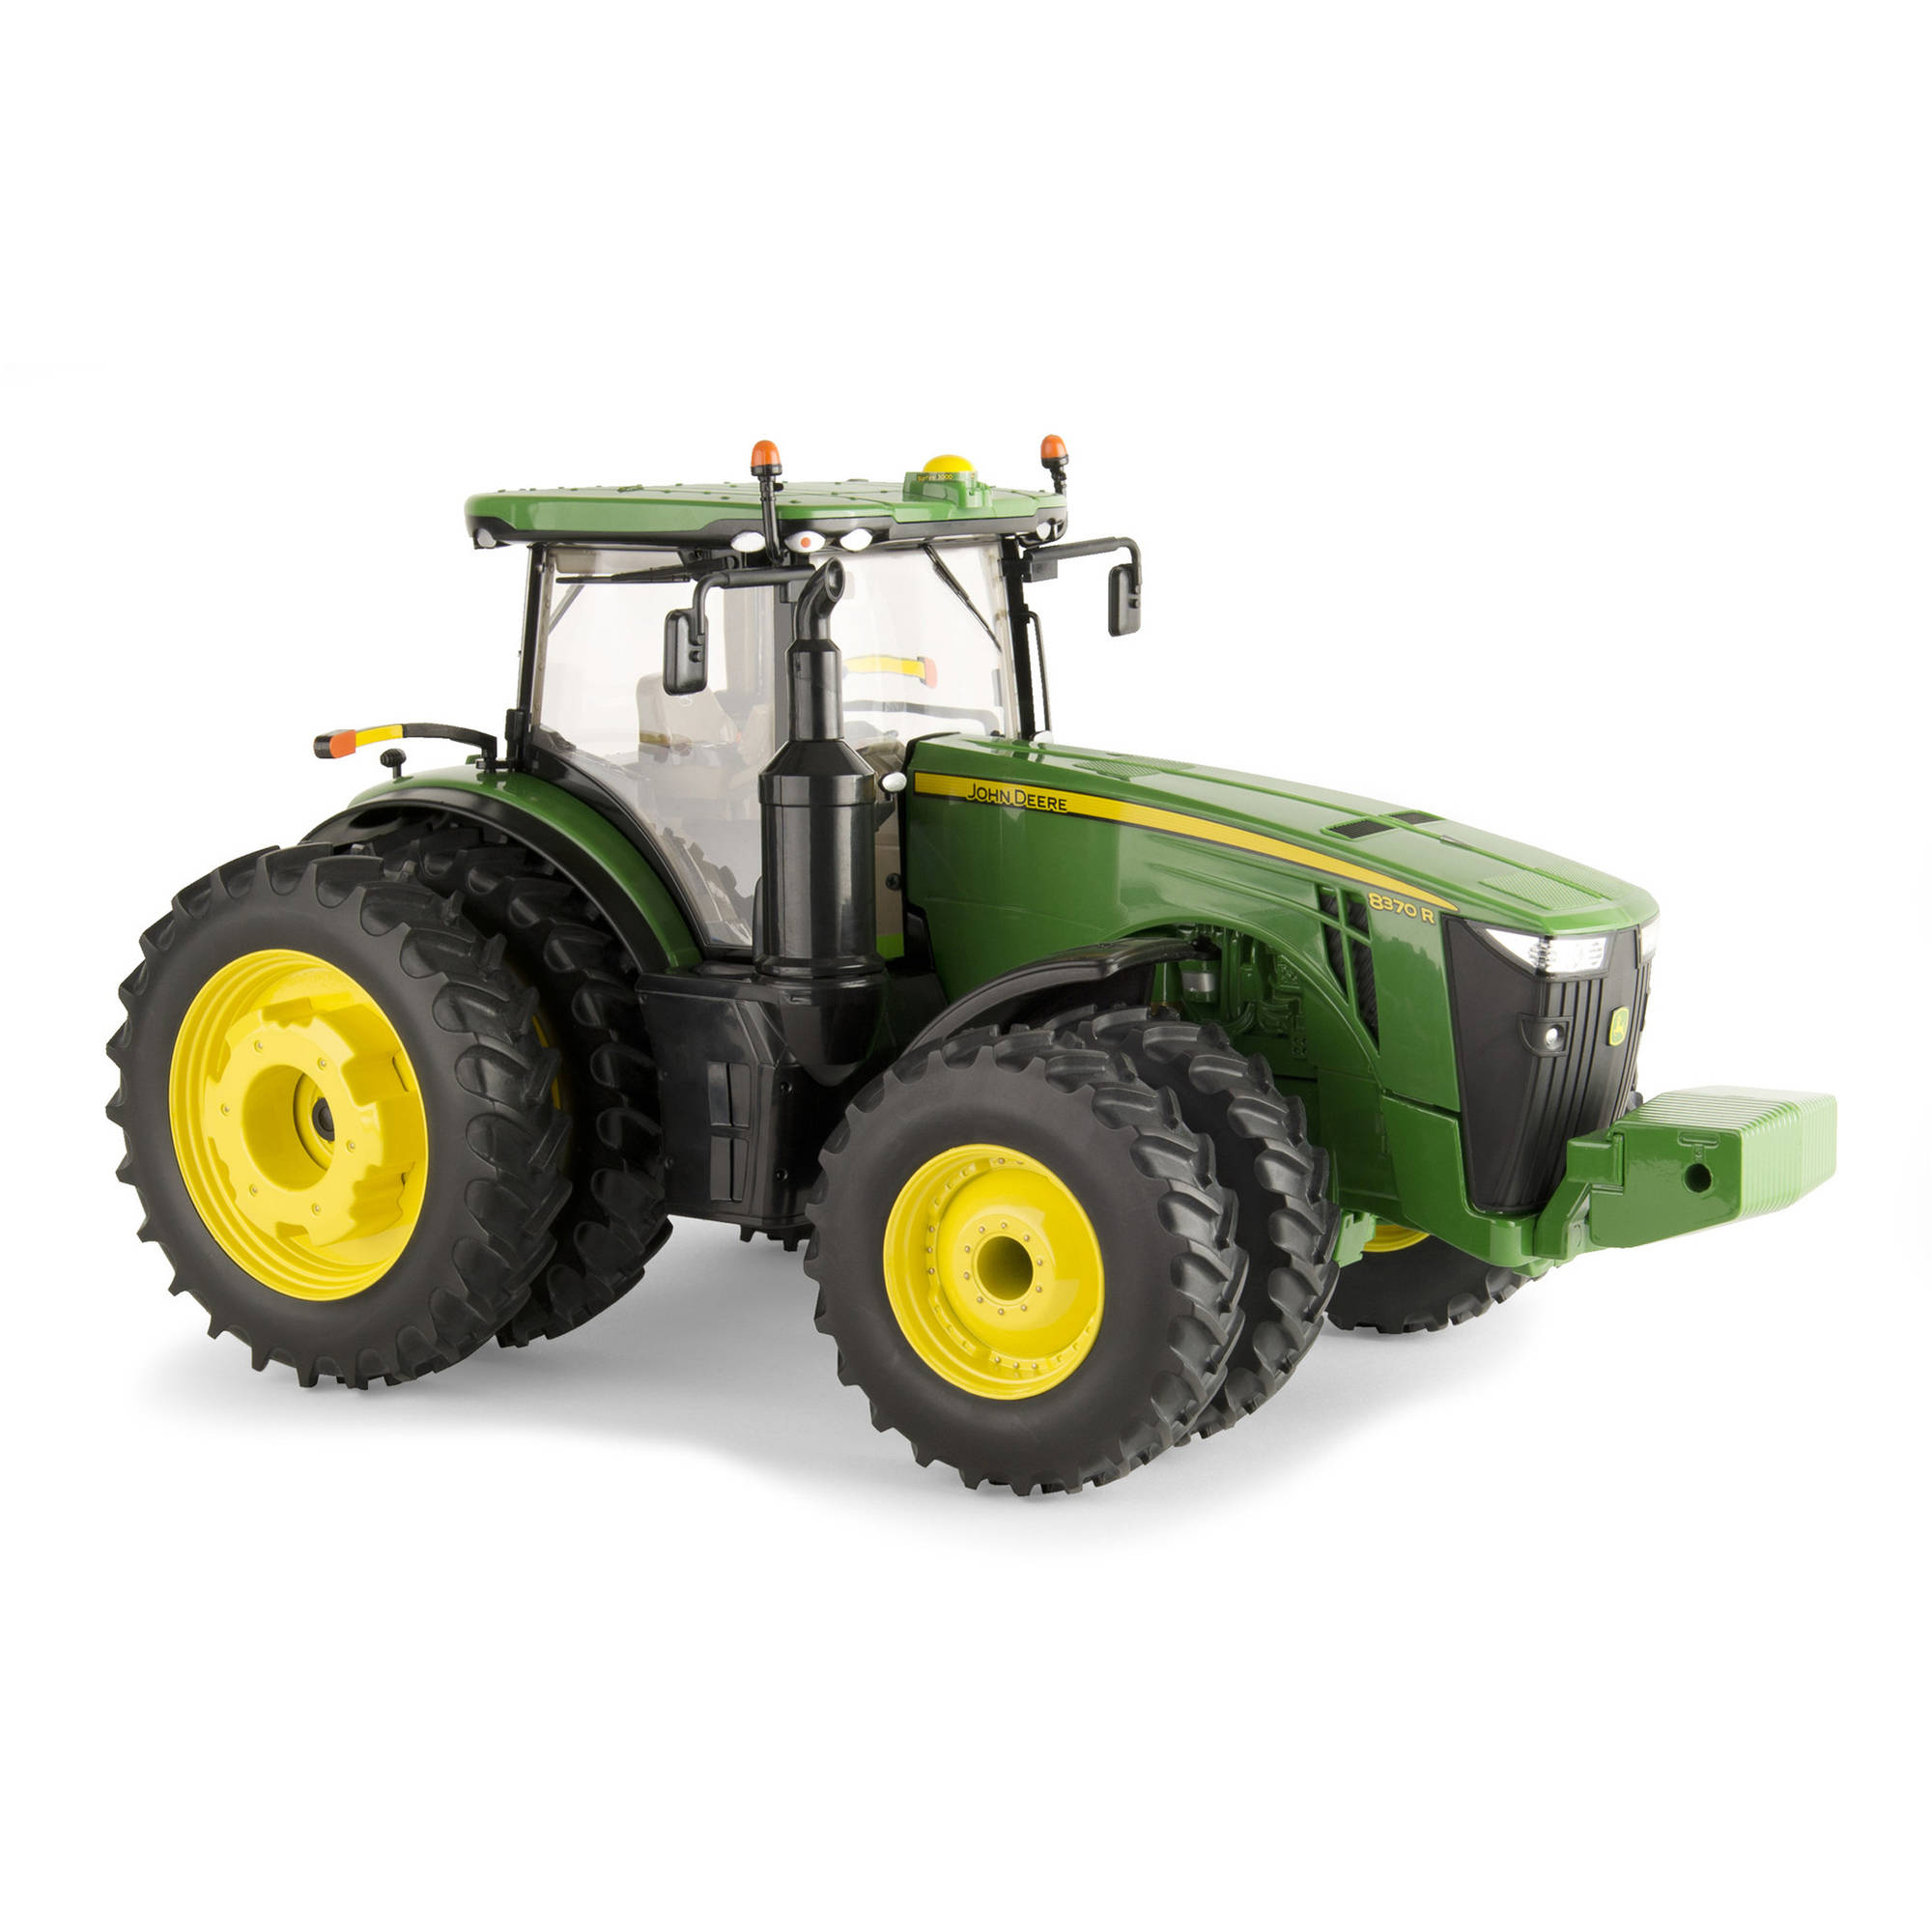 ERTL 1/16 Scale John Deere 8370R Tractor from the Prestige Collection